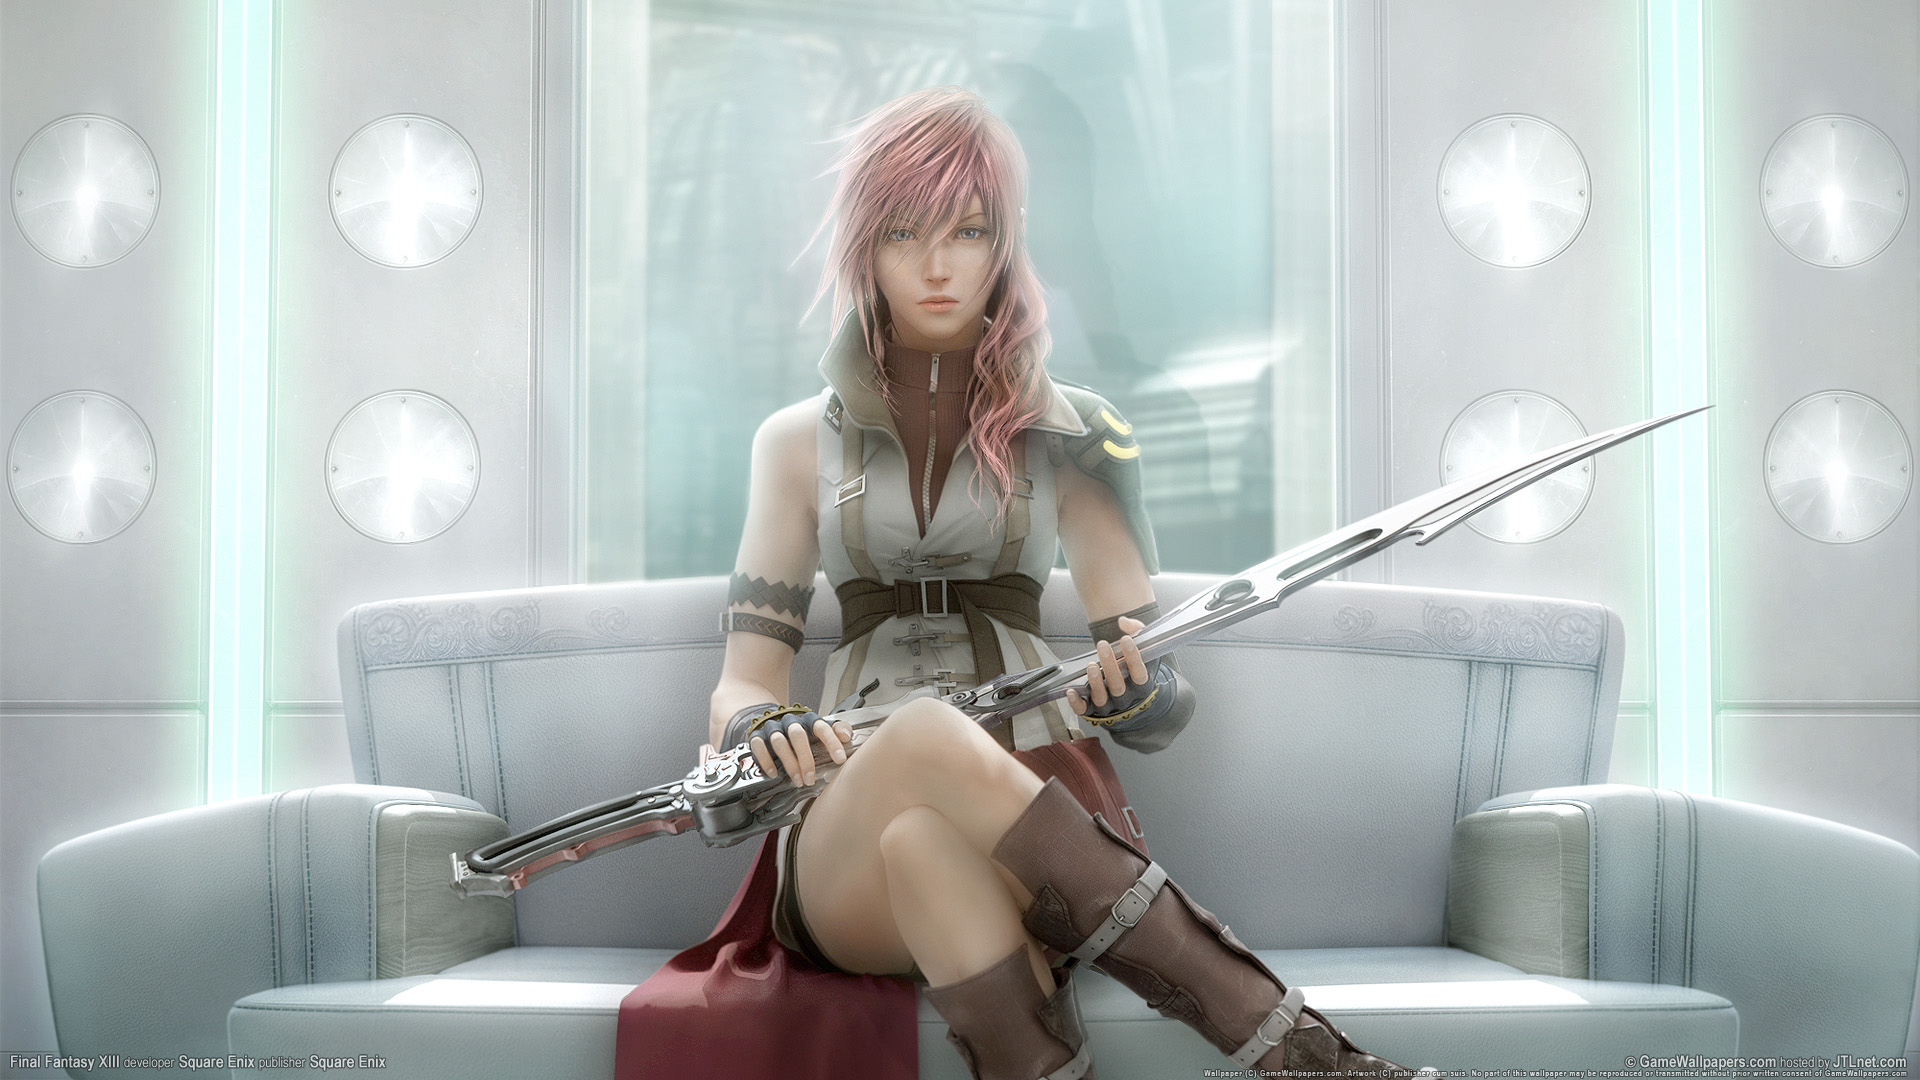 final fantasy wallpaper 1920x1080 1920x1080